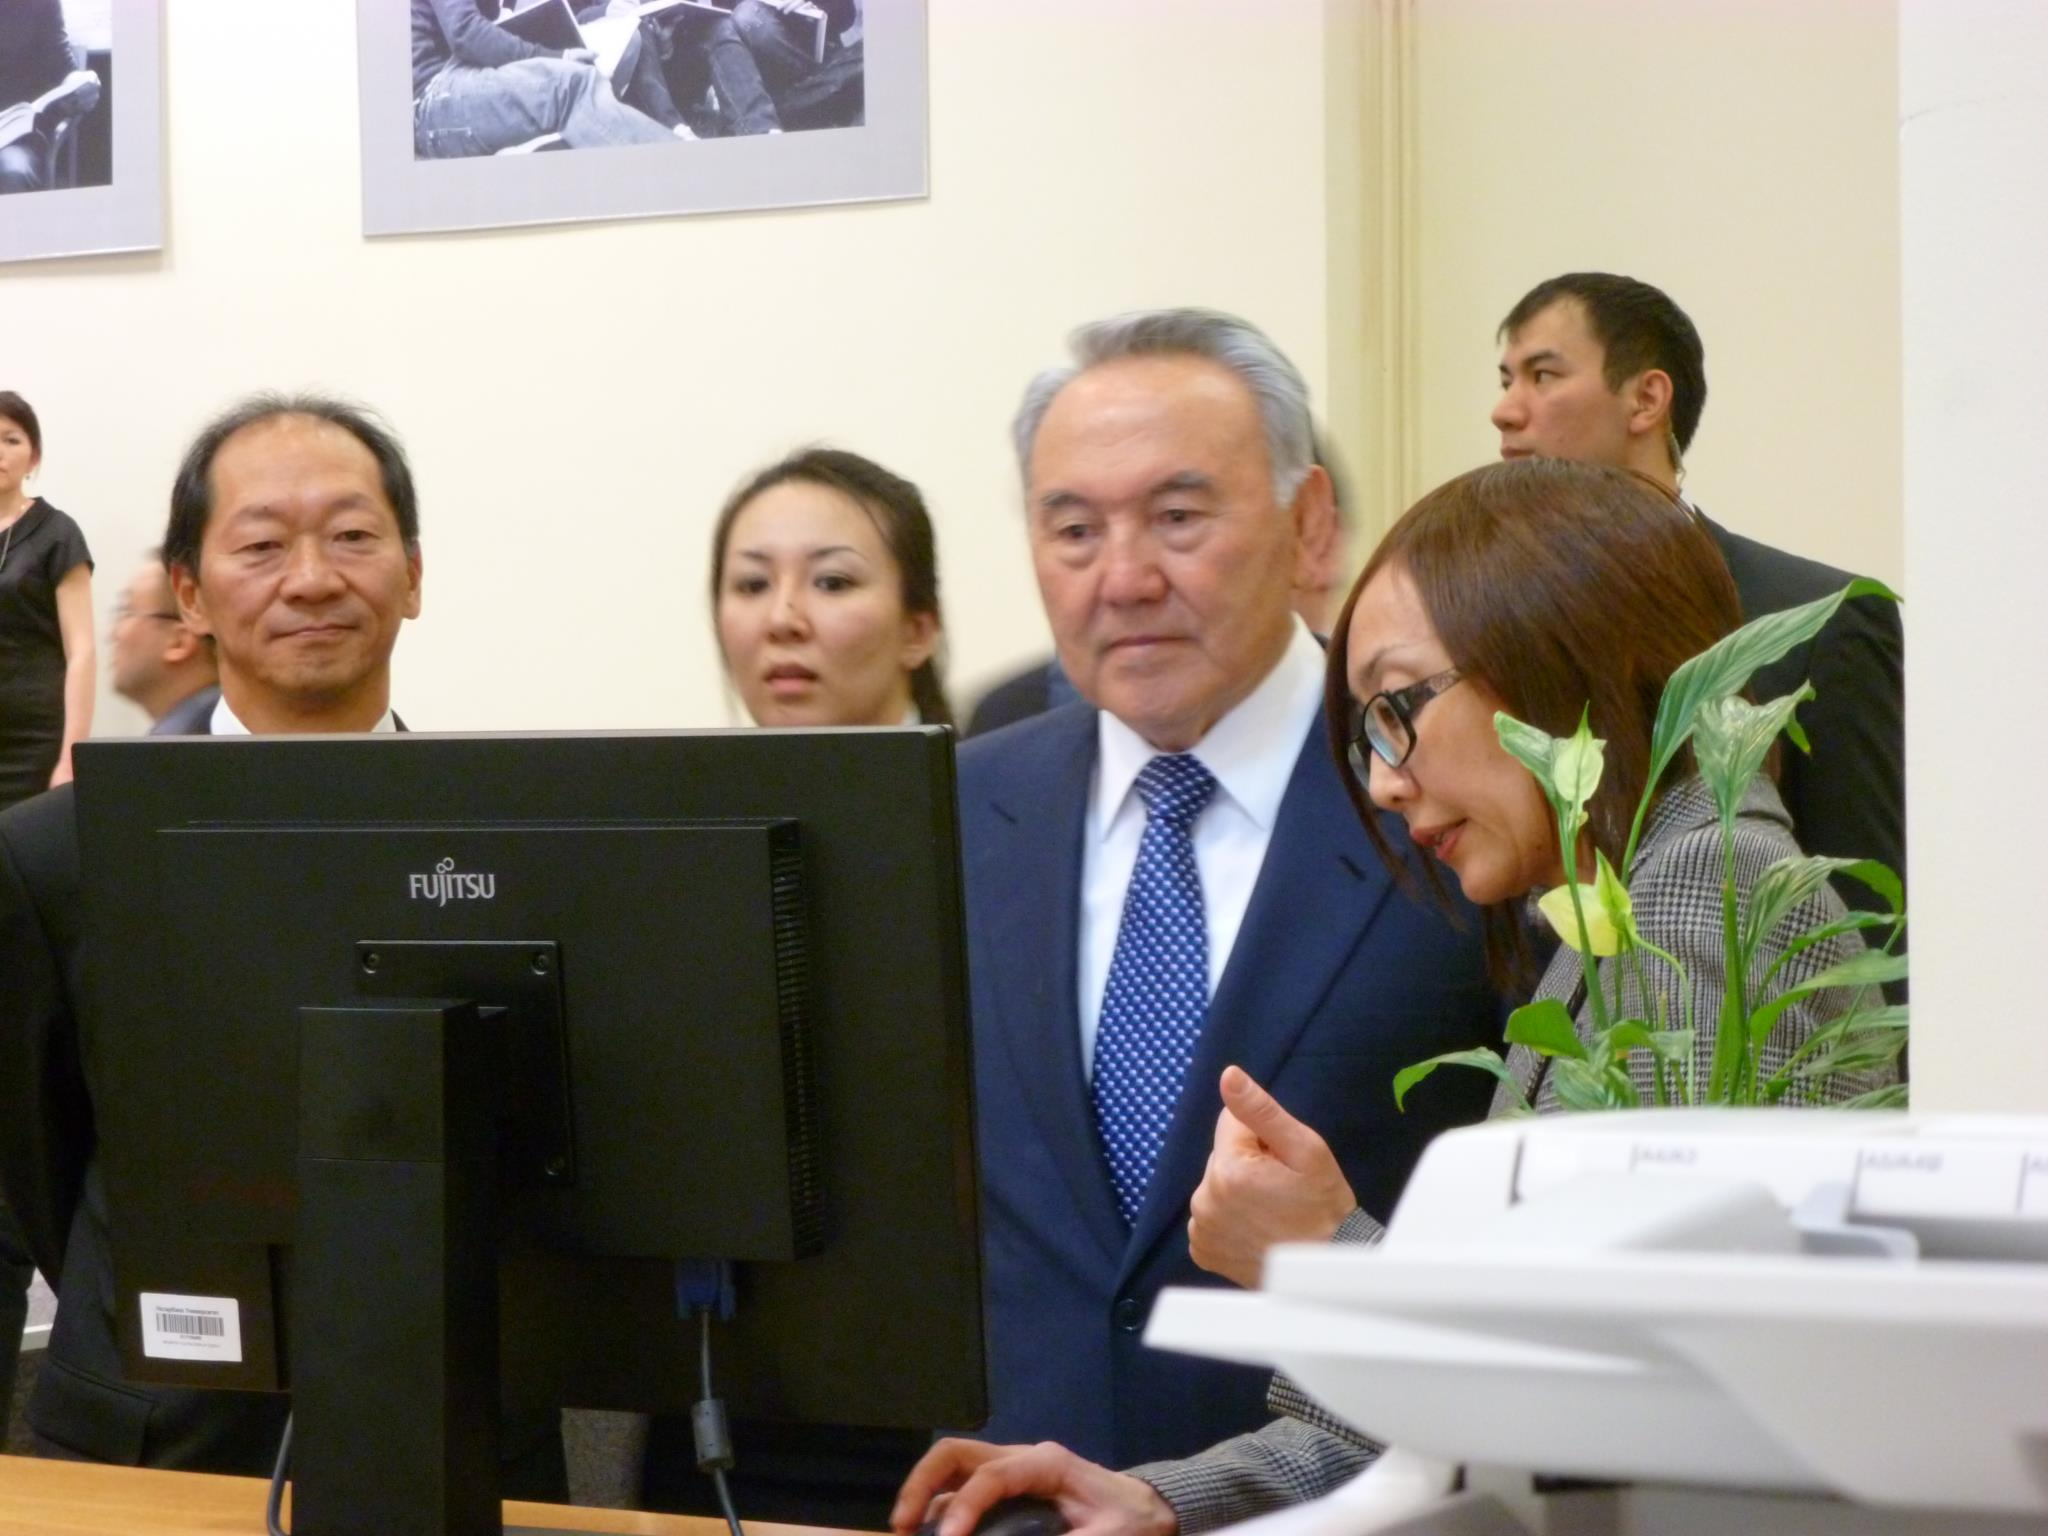 Nursultan Nazarbayev in the library